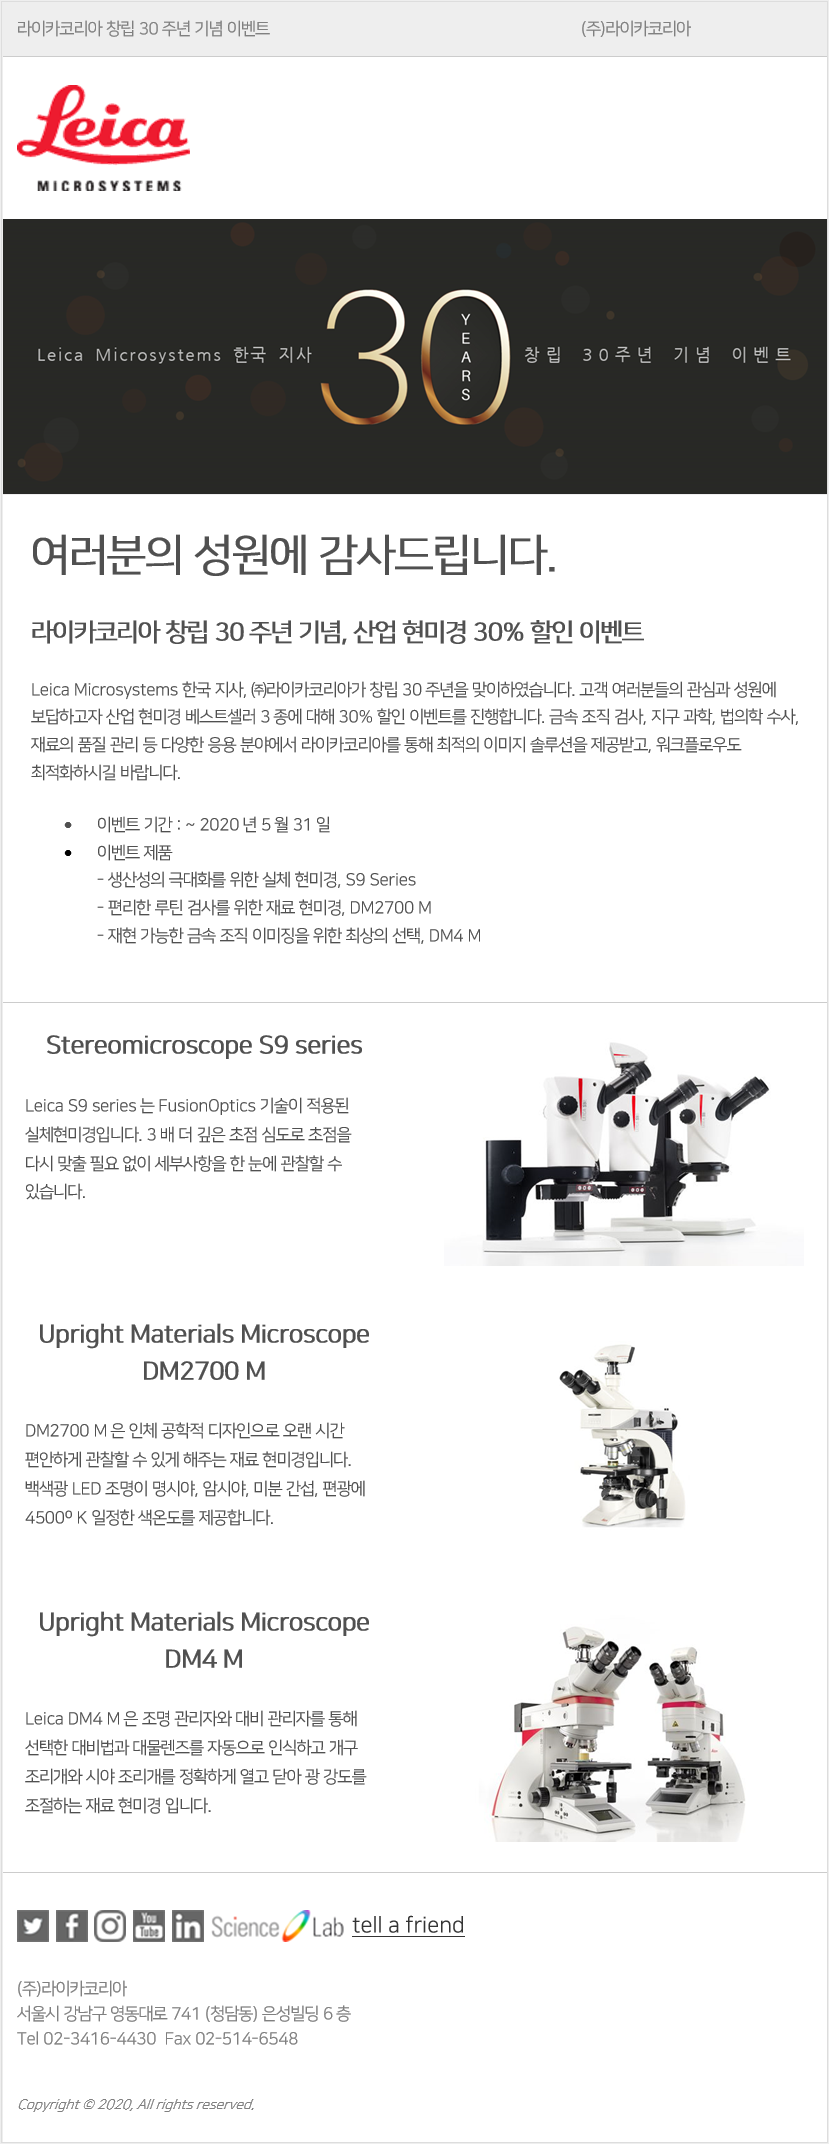 Leica_30years promotion.png